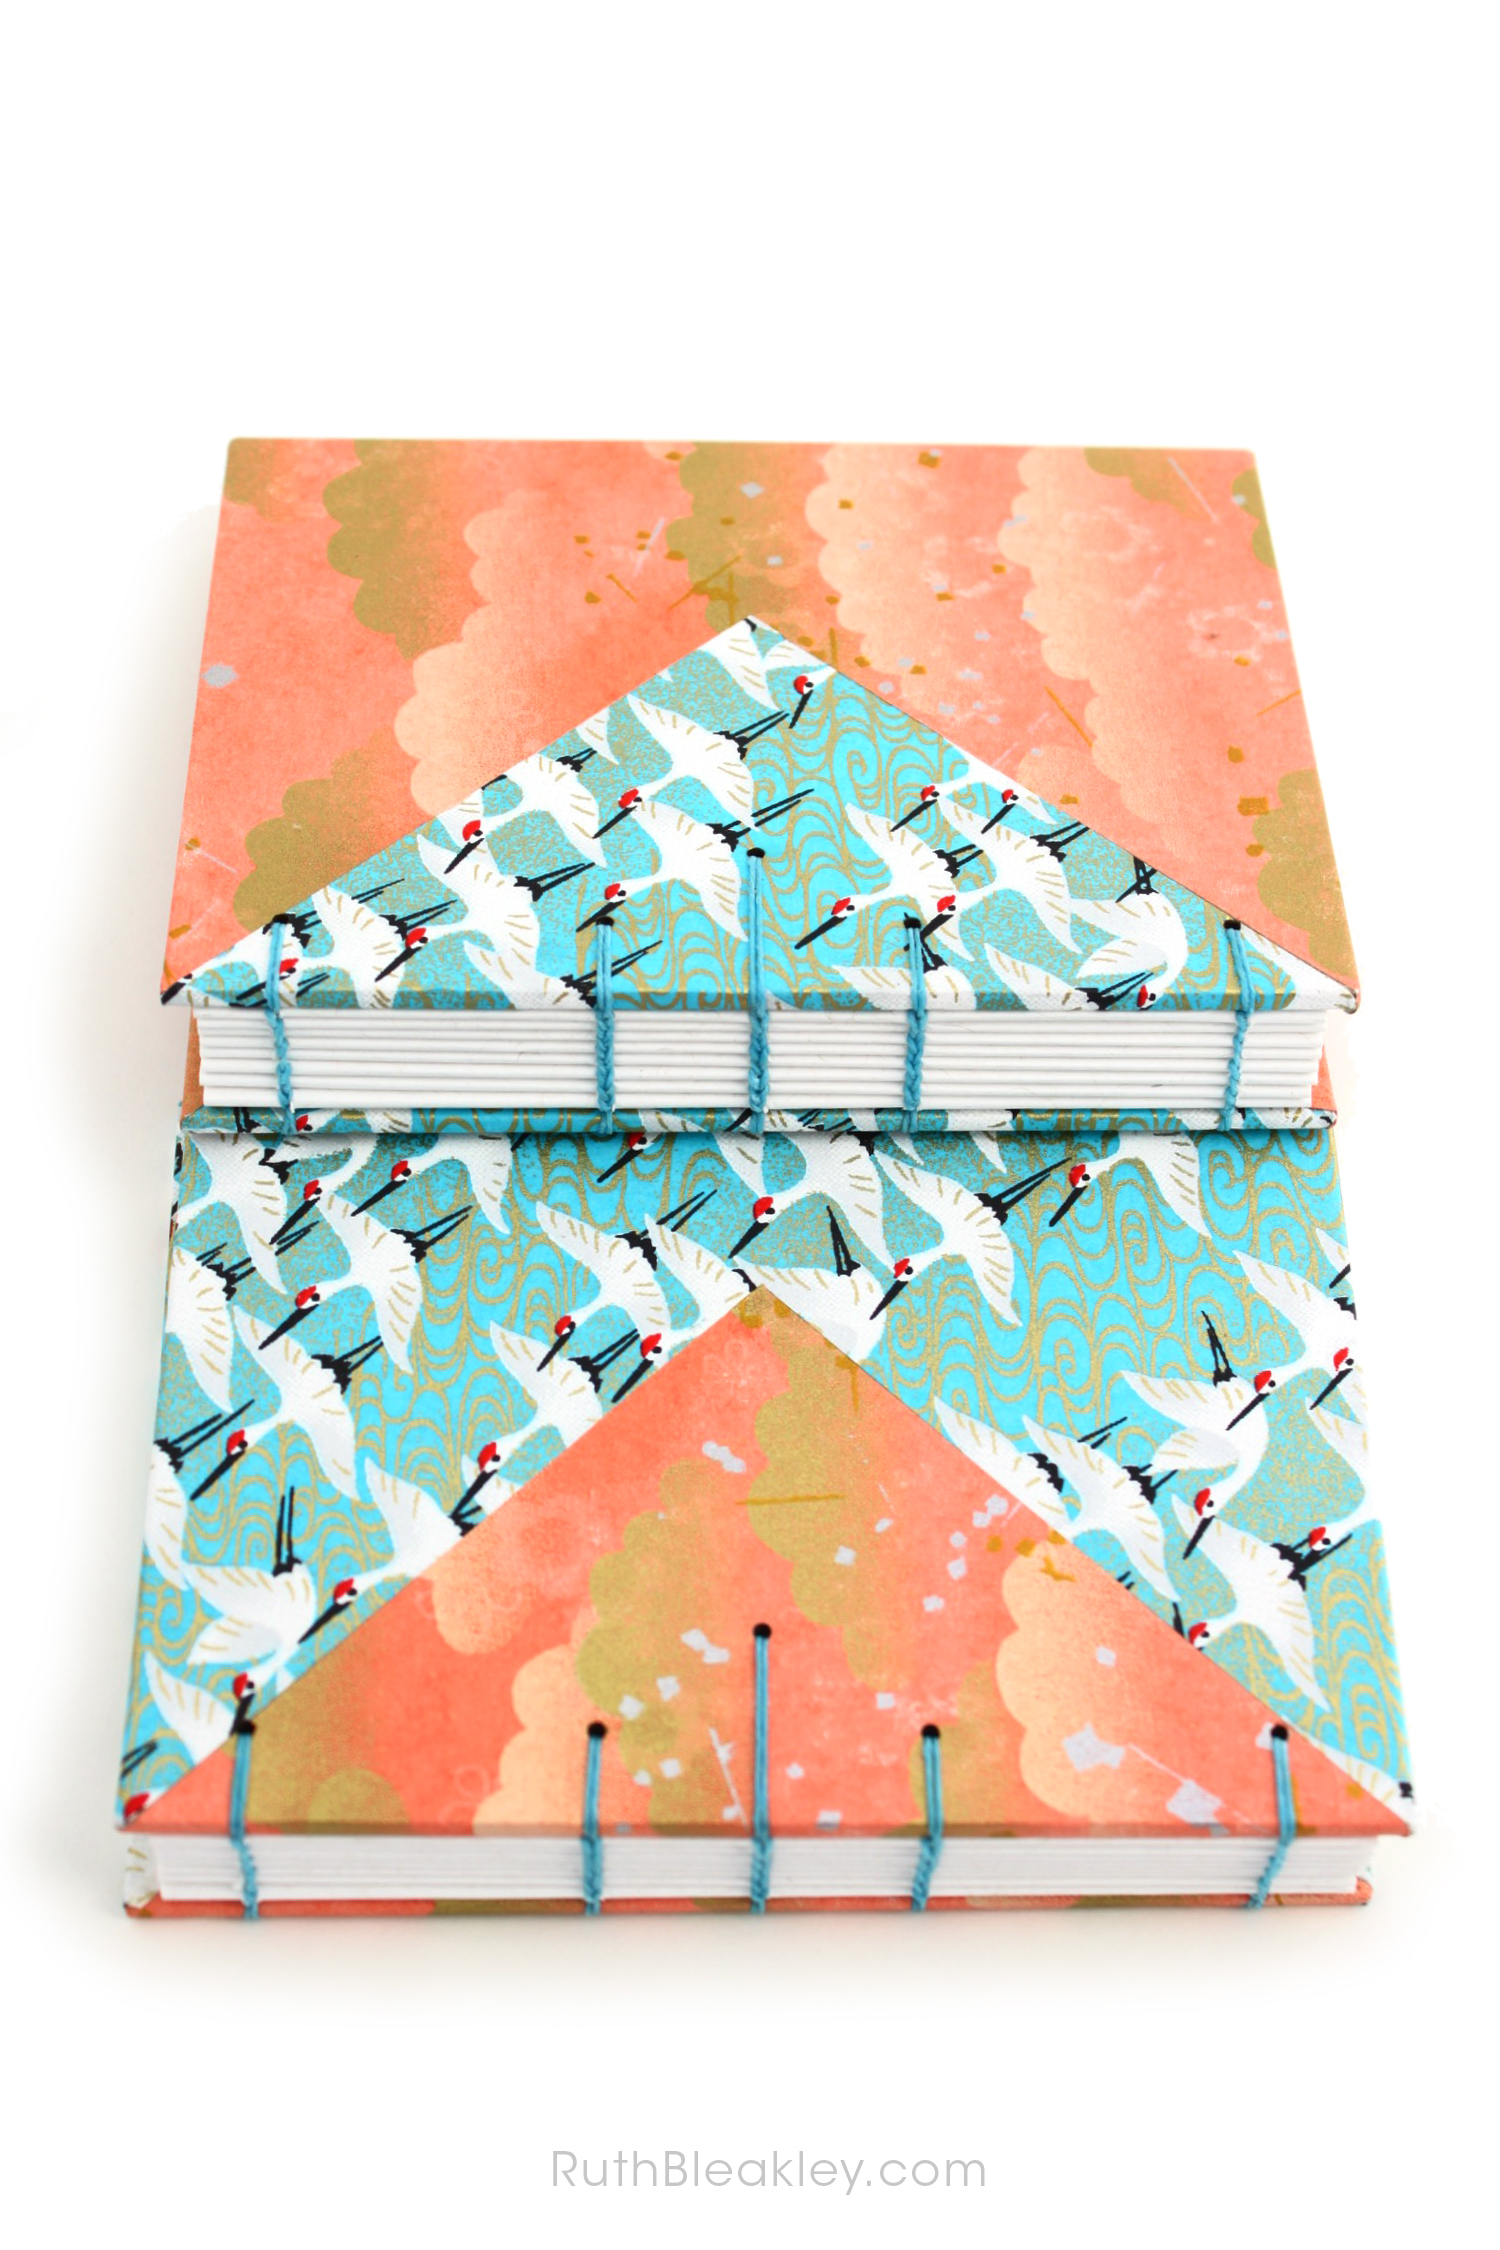 Blue Cranes and Peach Cloud Twin Journals by Ruth Bleakley that lay flat when open - 7